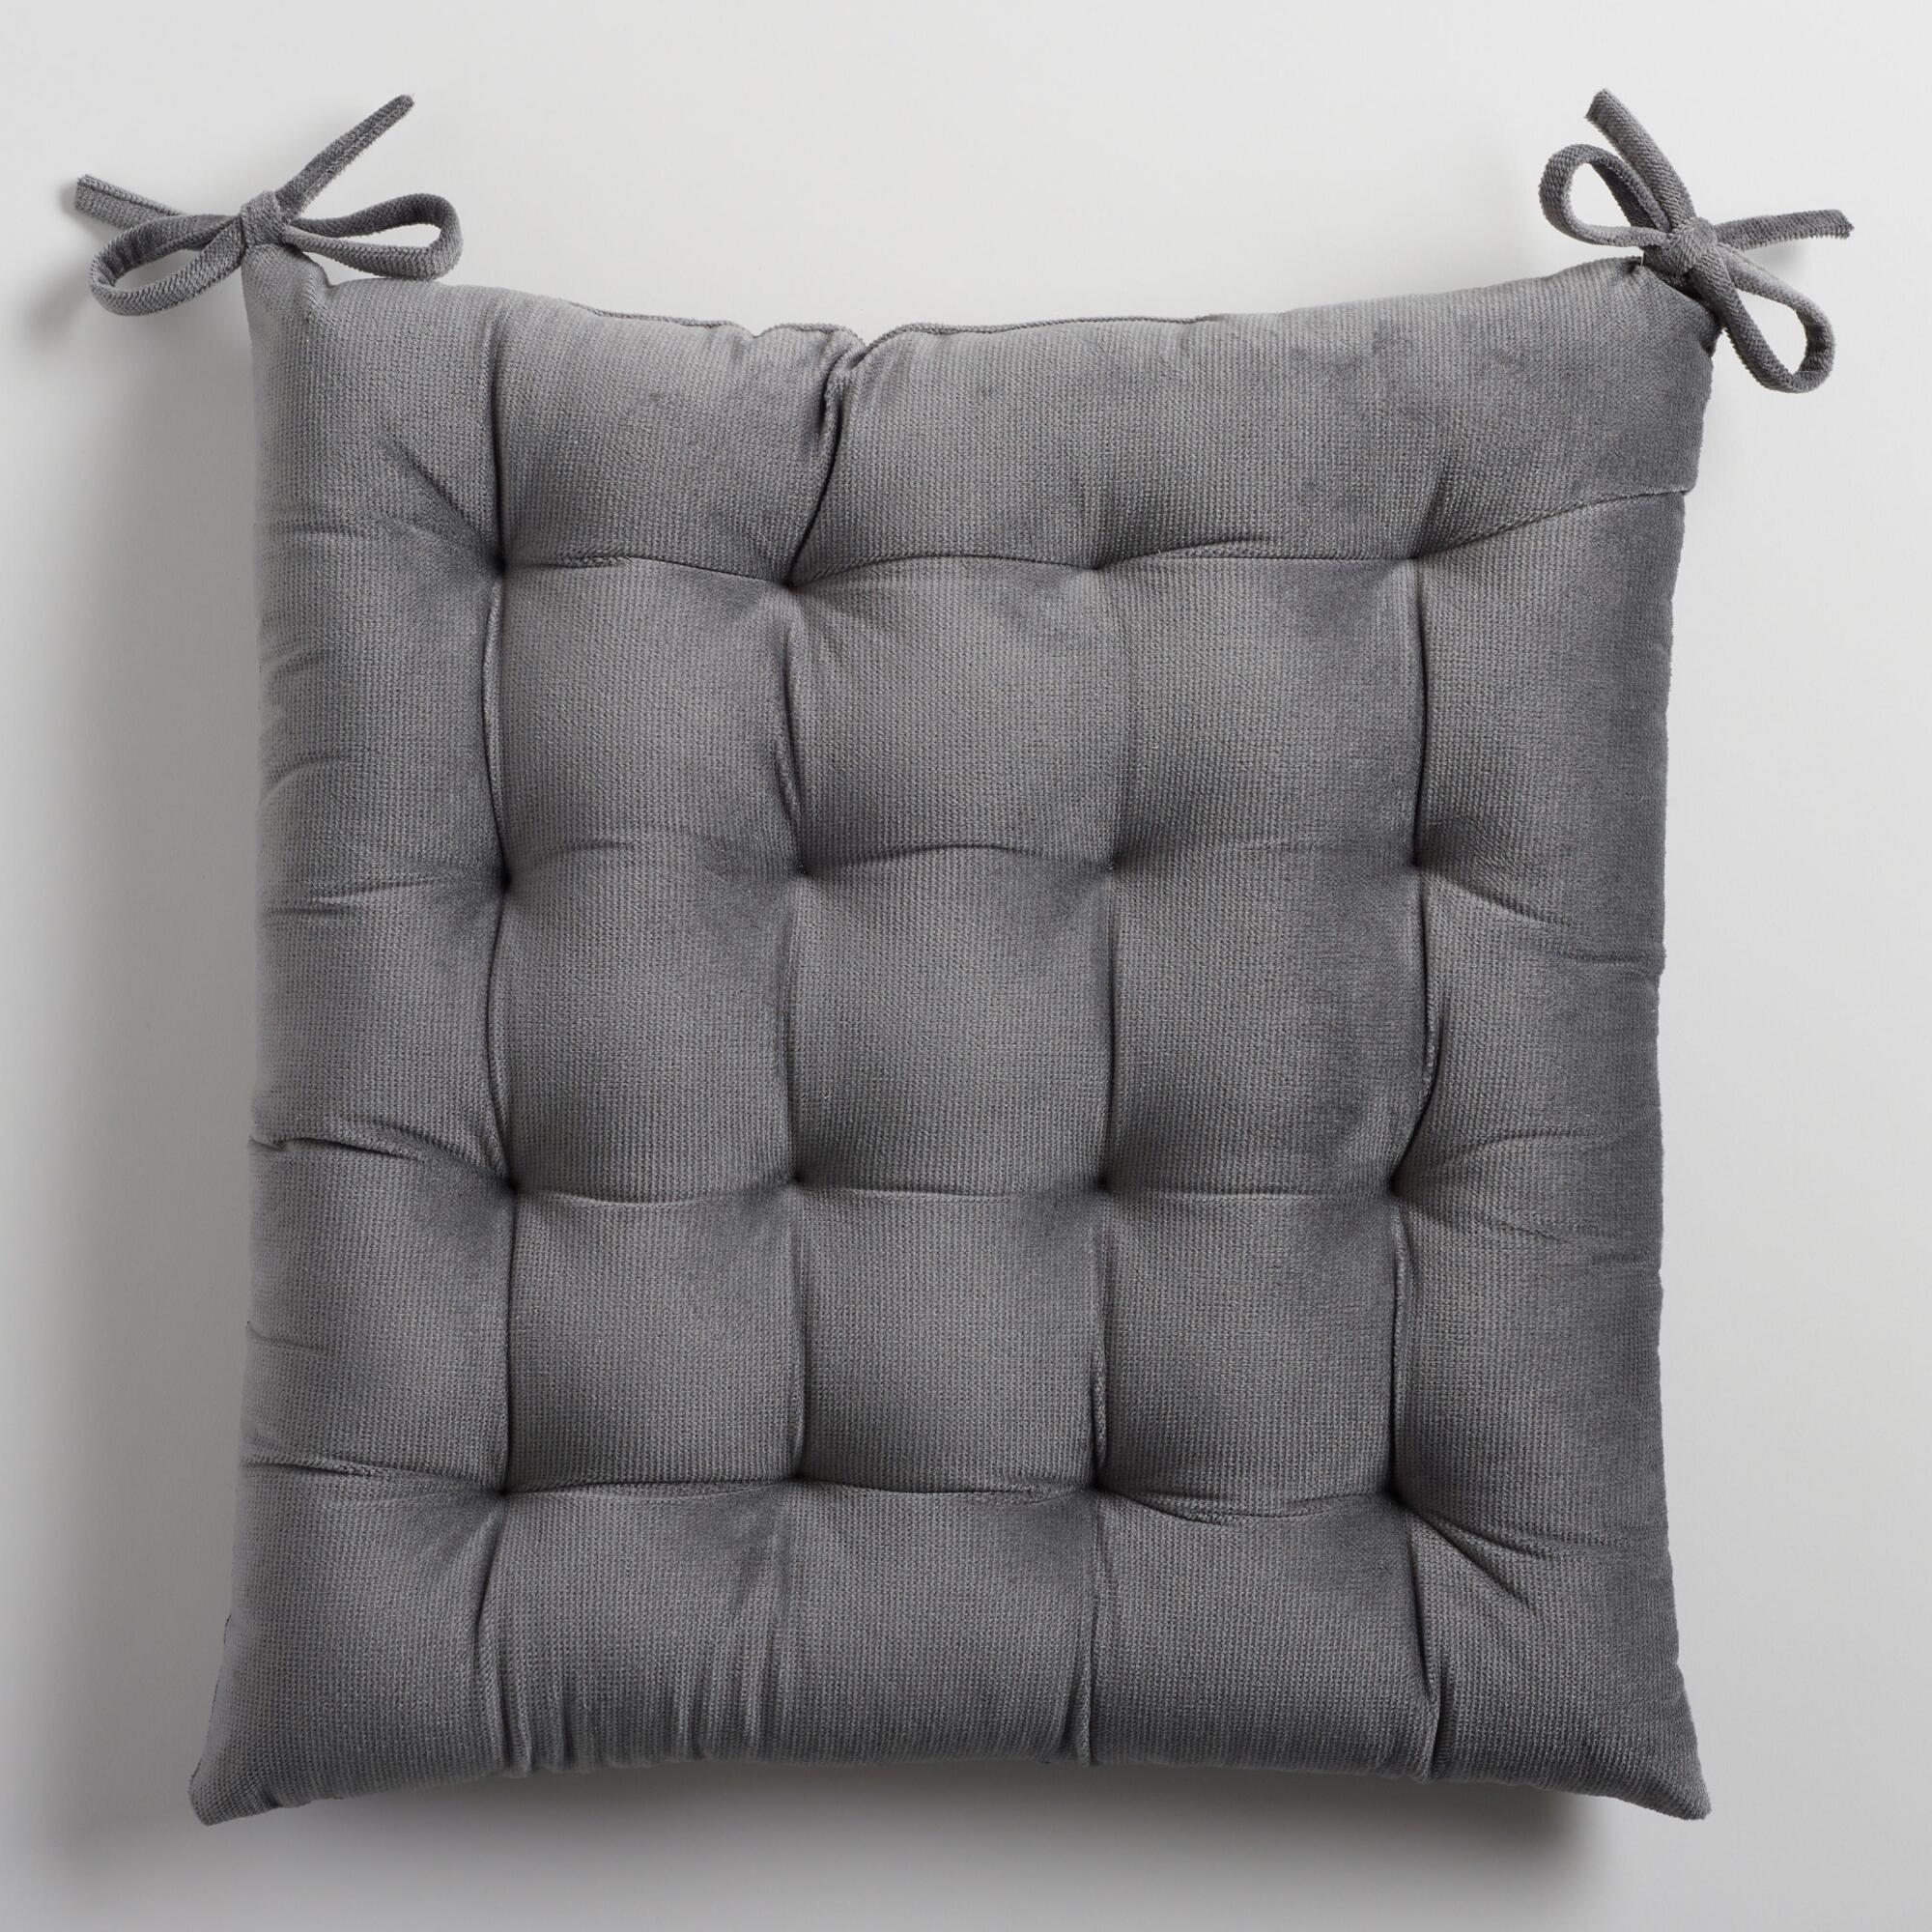 shipping pillow solid home outdoor free product squared cushion chair pillows on textured garden gray